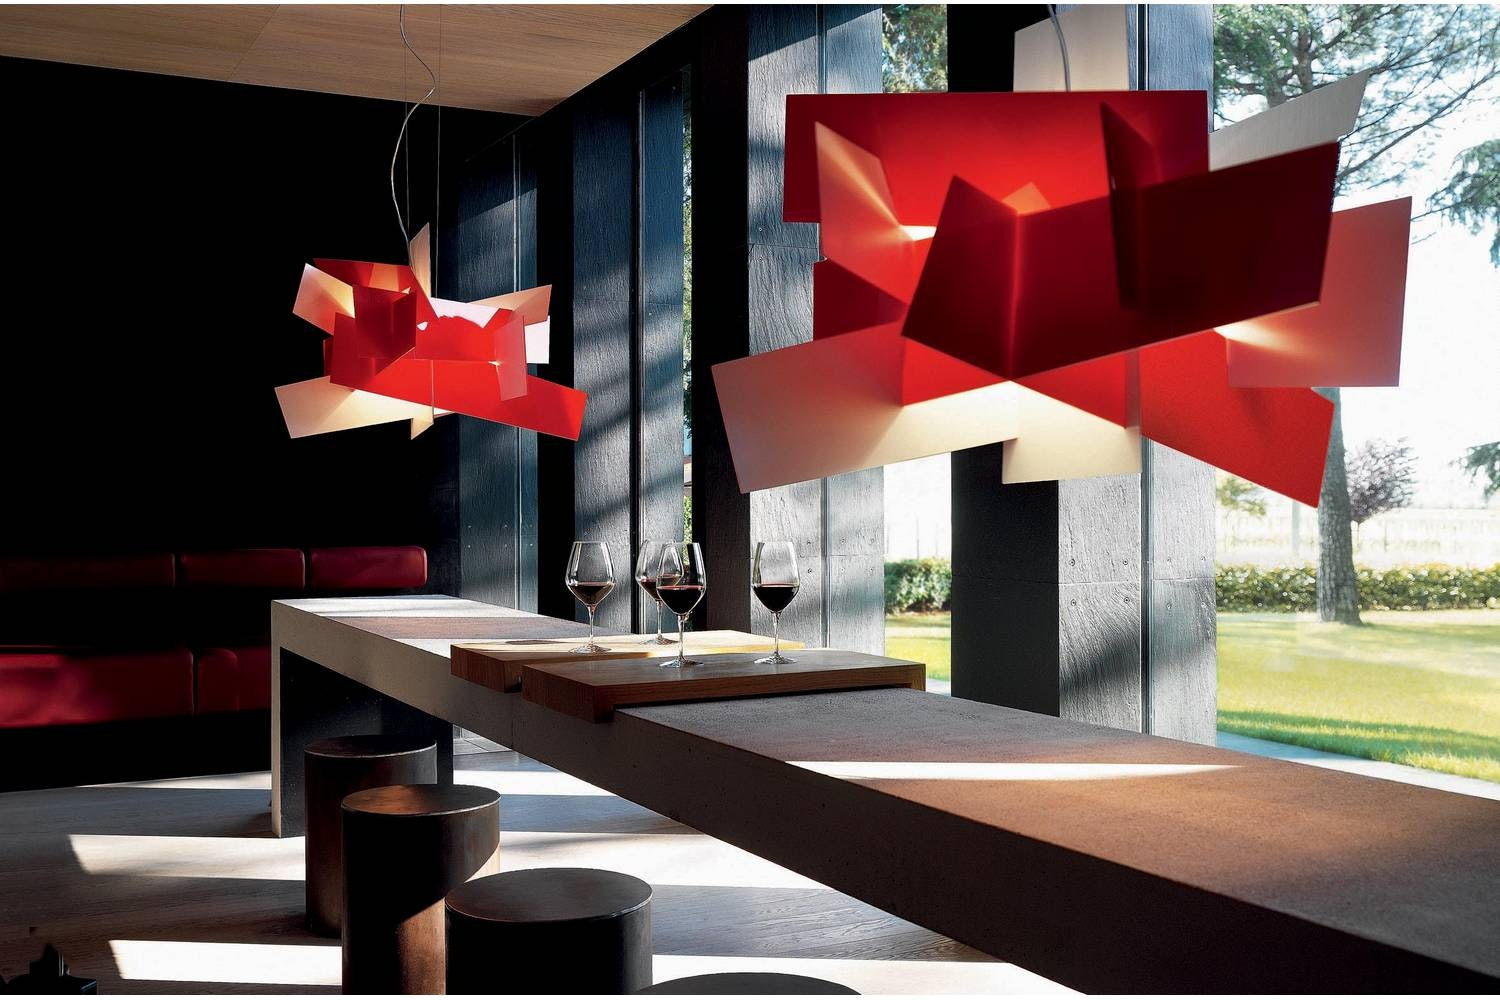 Big Bang Suspension Lamp by Enrico Franzolini & Vicente Garcia Jimenez for Foscarini